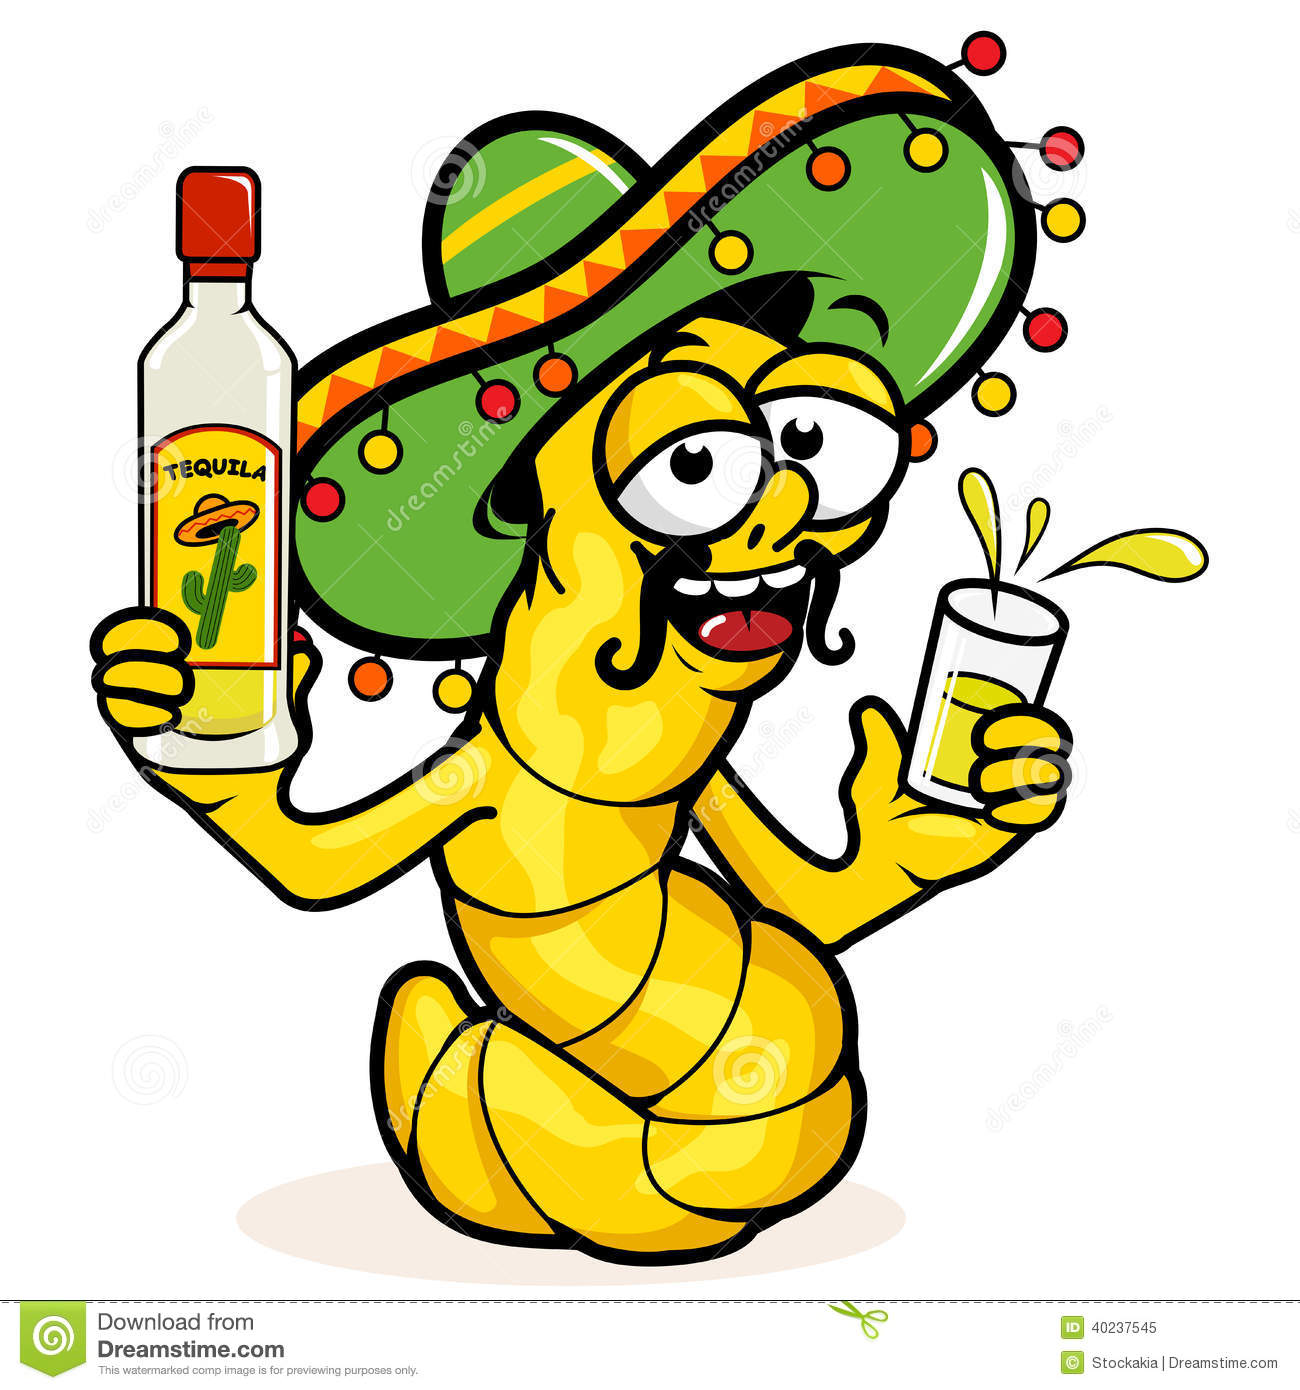 Worm clipart yellow #7